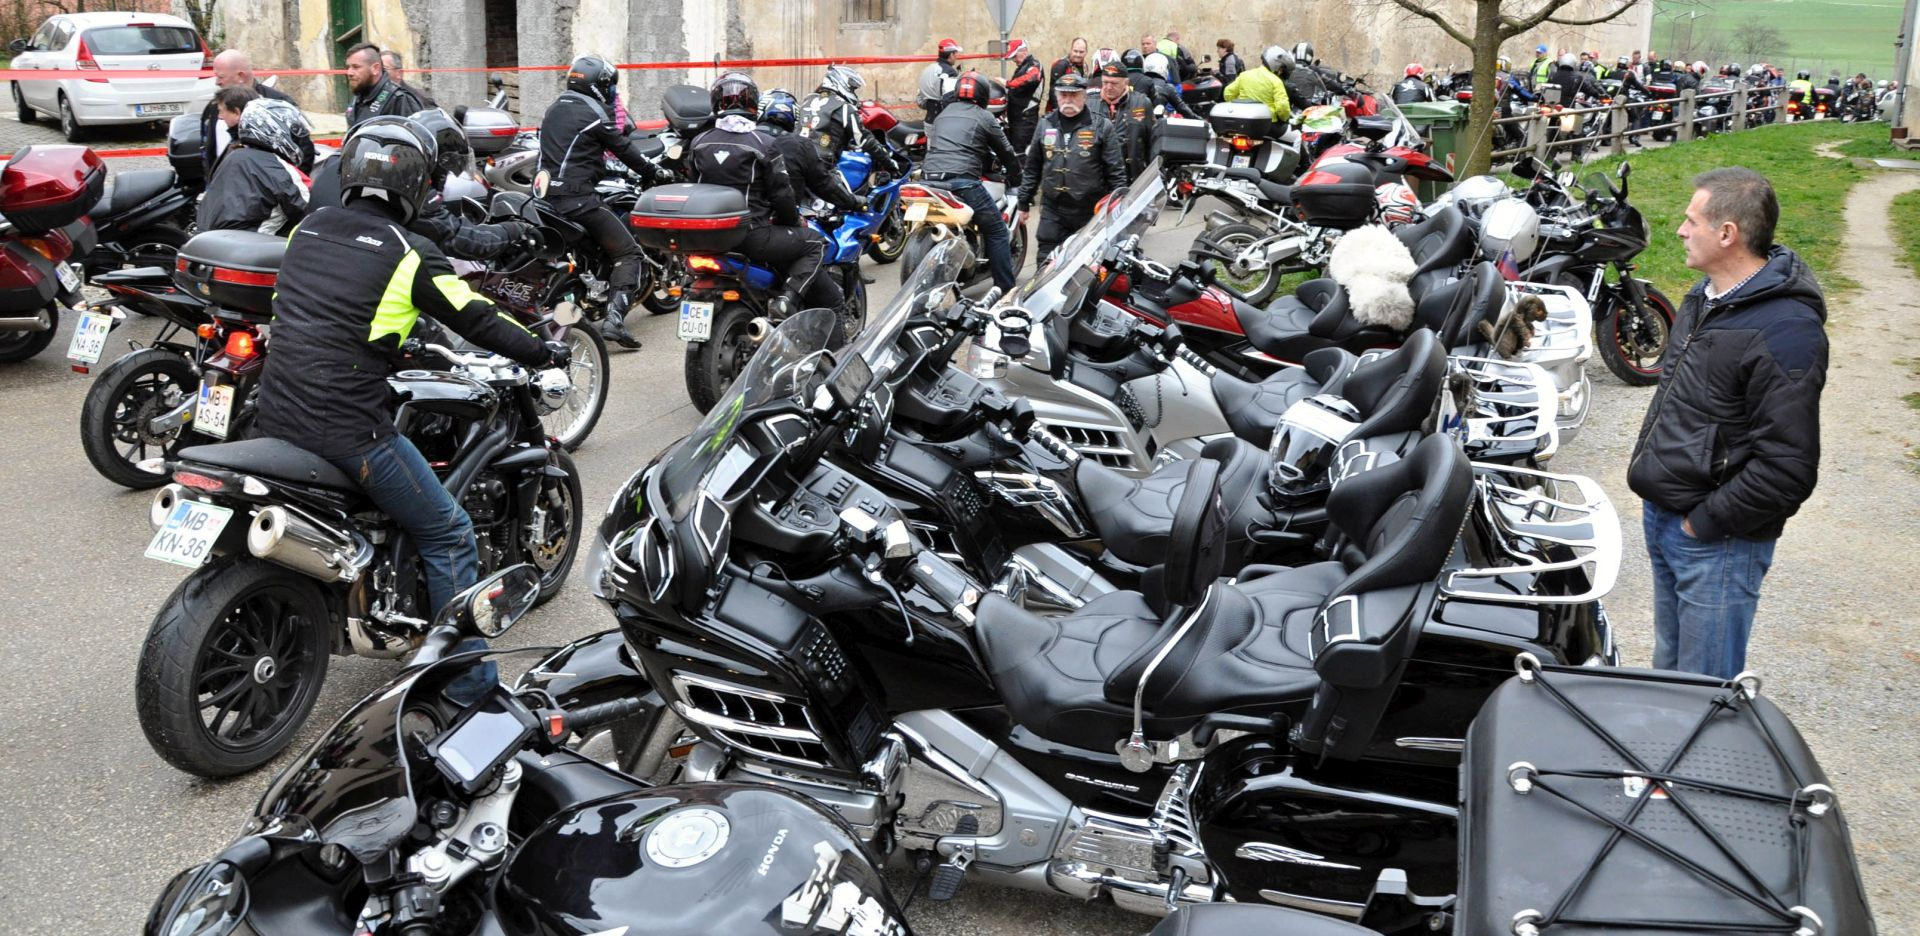 VIDEO: Održan veliki Motorcycle Rolling Thunder Parade